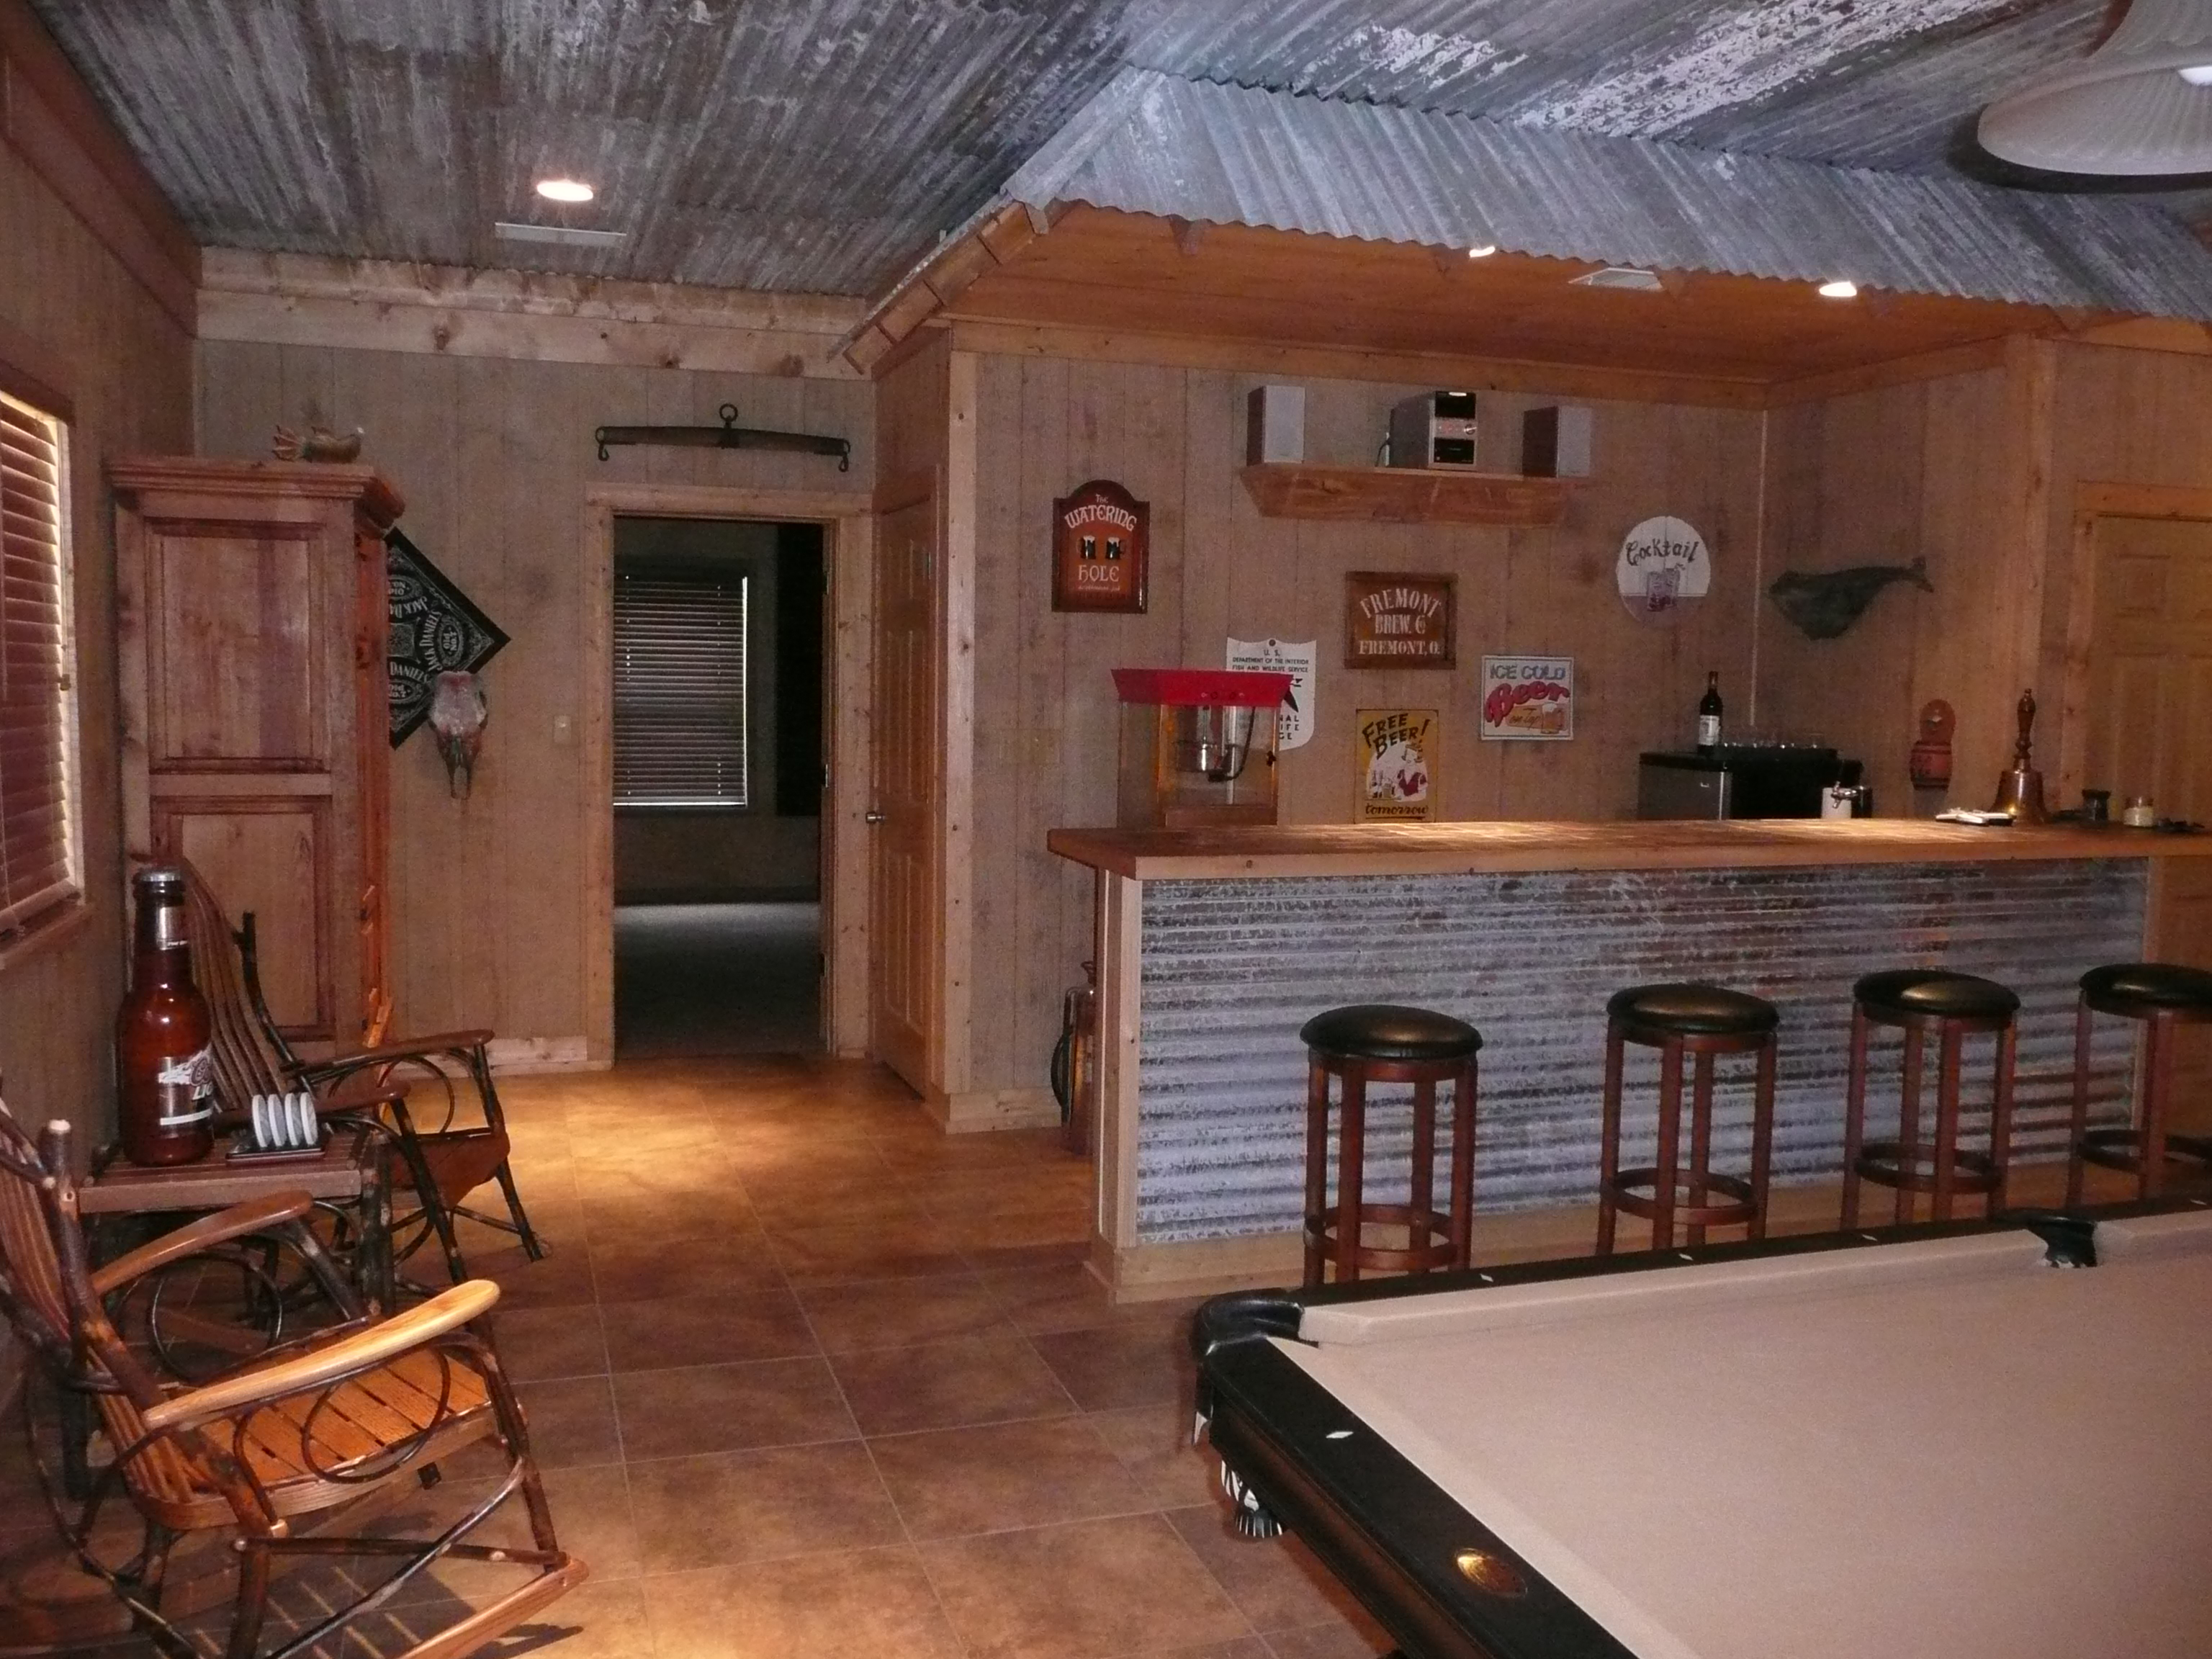 Let us convert your damp dreary basement into usefull pleasant space  #A26129